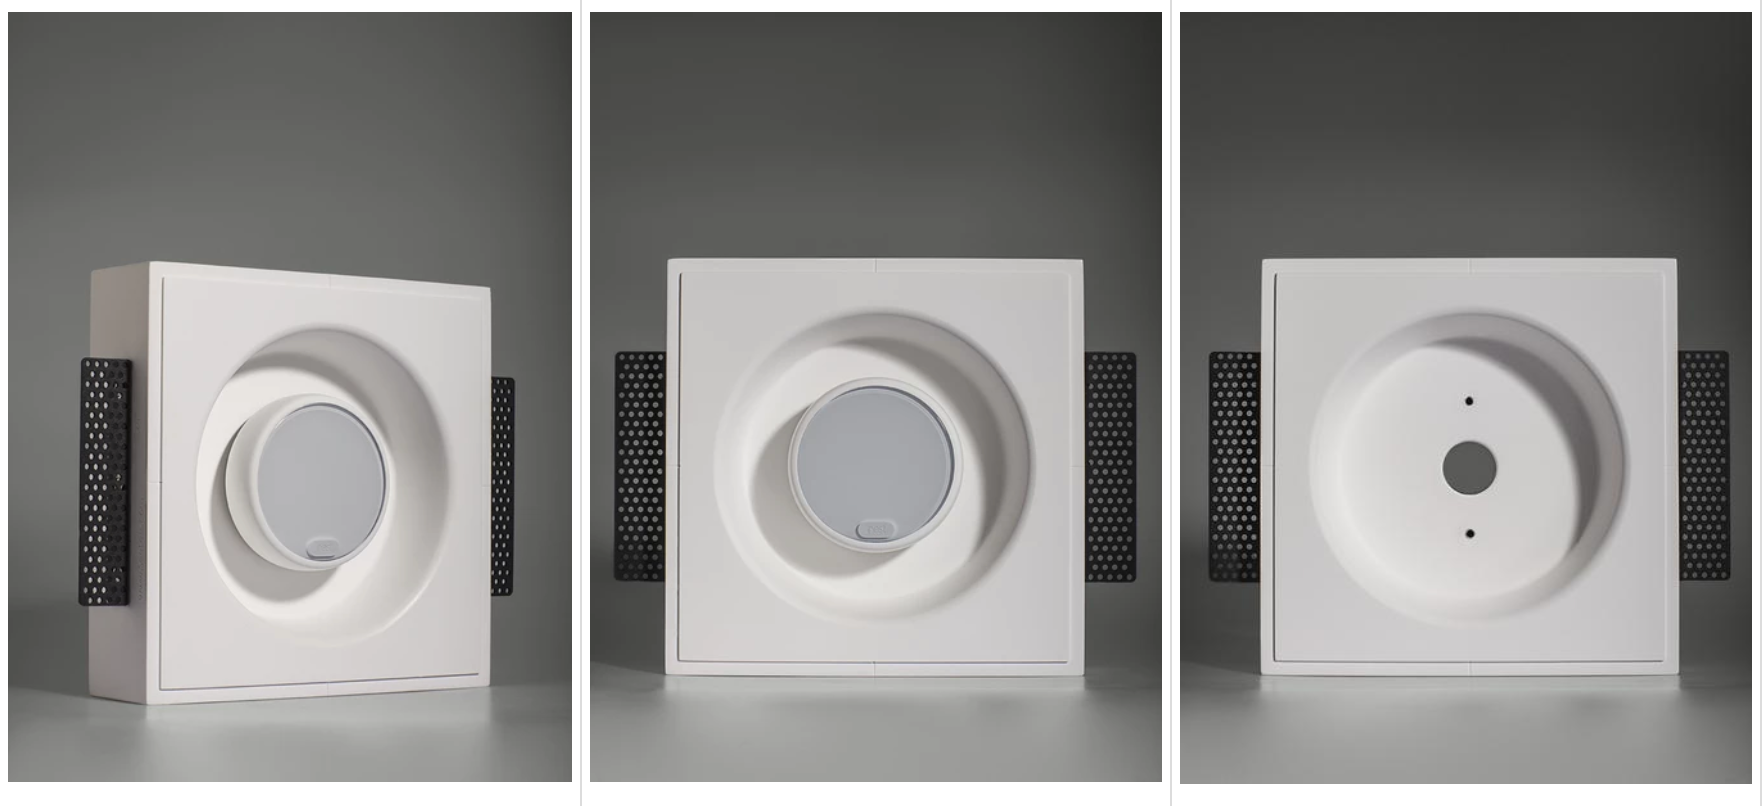 Nest Thermostat Flush Wall Mount